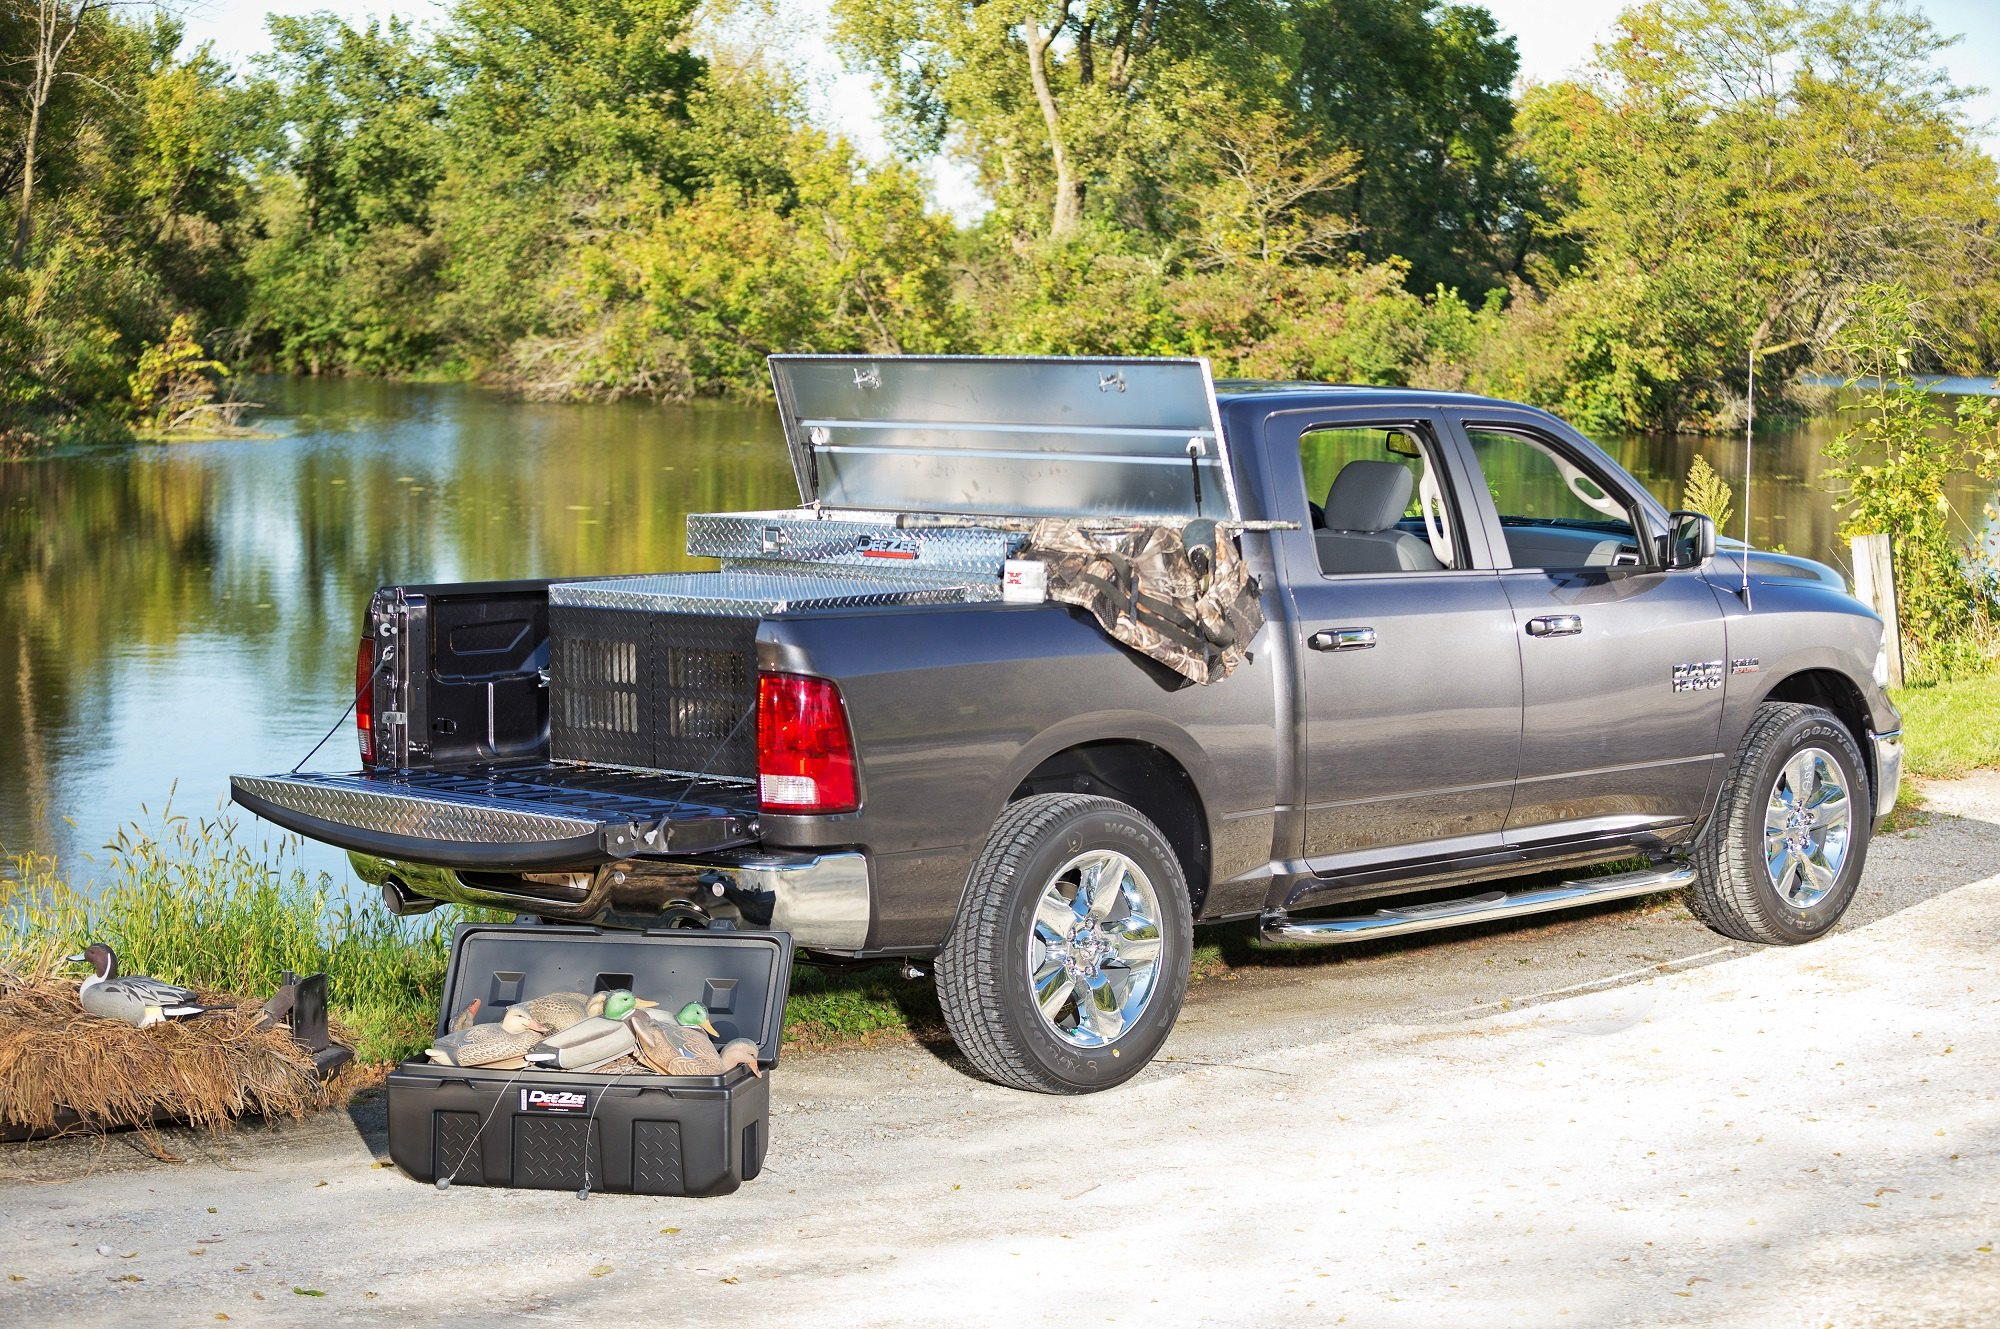 Must Have Hunting Pack for Dodge Ram Trucks by Dee Zee — CARiD